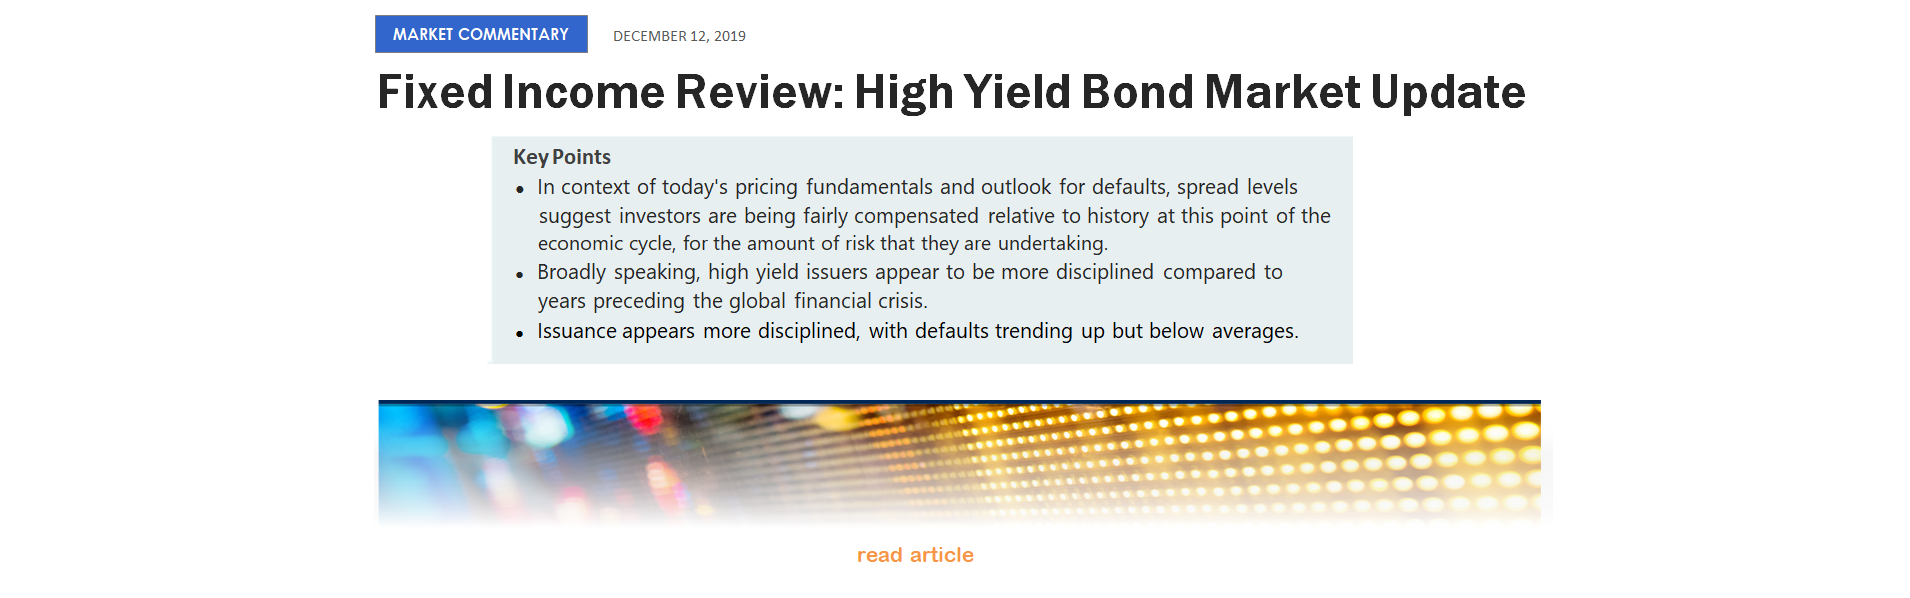 https://www.barings.com/us/financial-advisor/viewpoints/are-high-yield-investors-being-compensated-for-risks